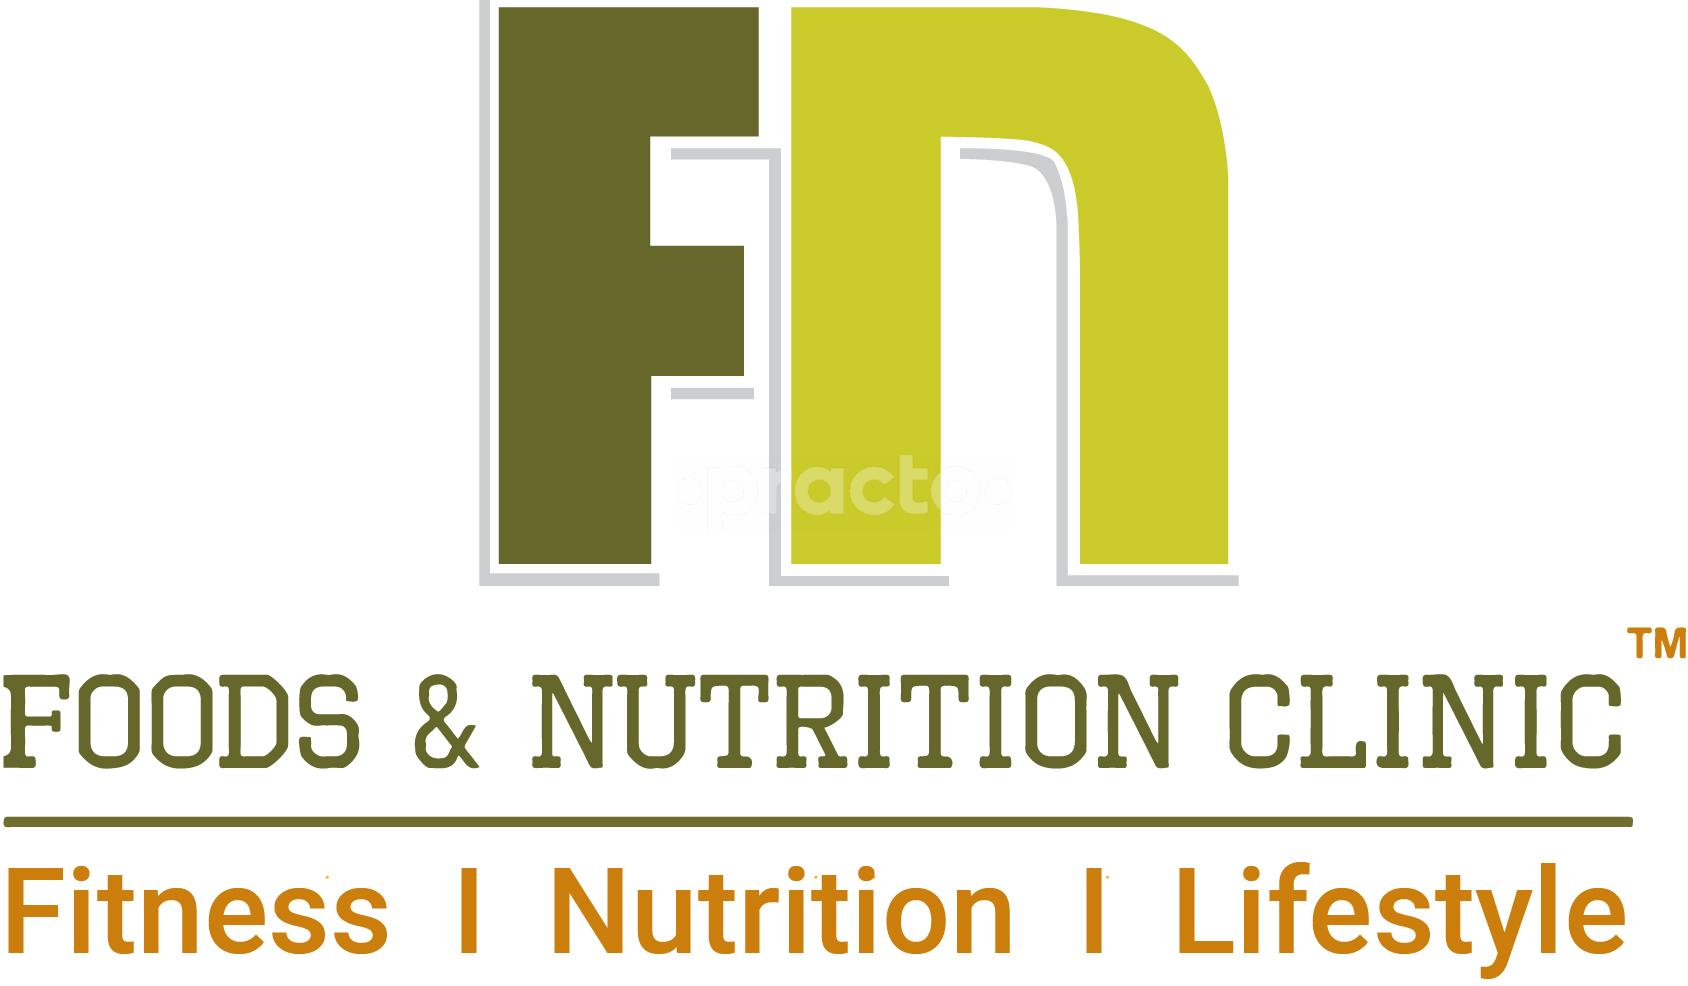 Foods & Nutrition Clinic